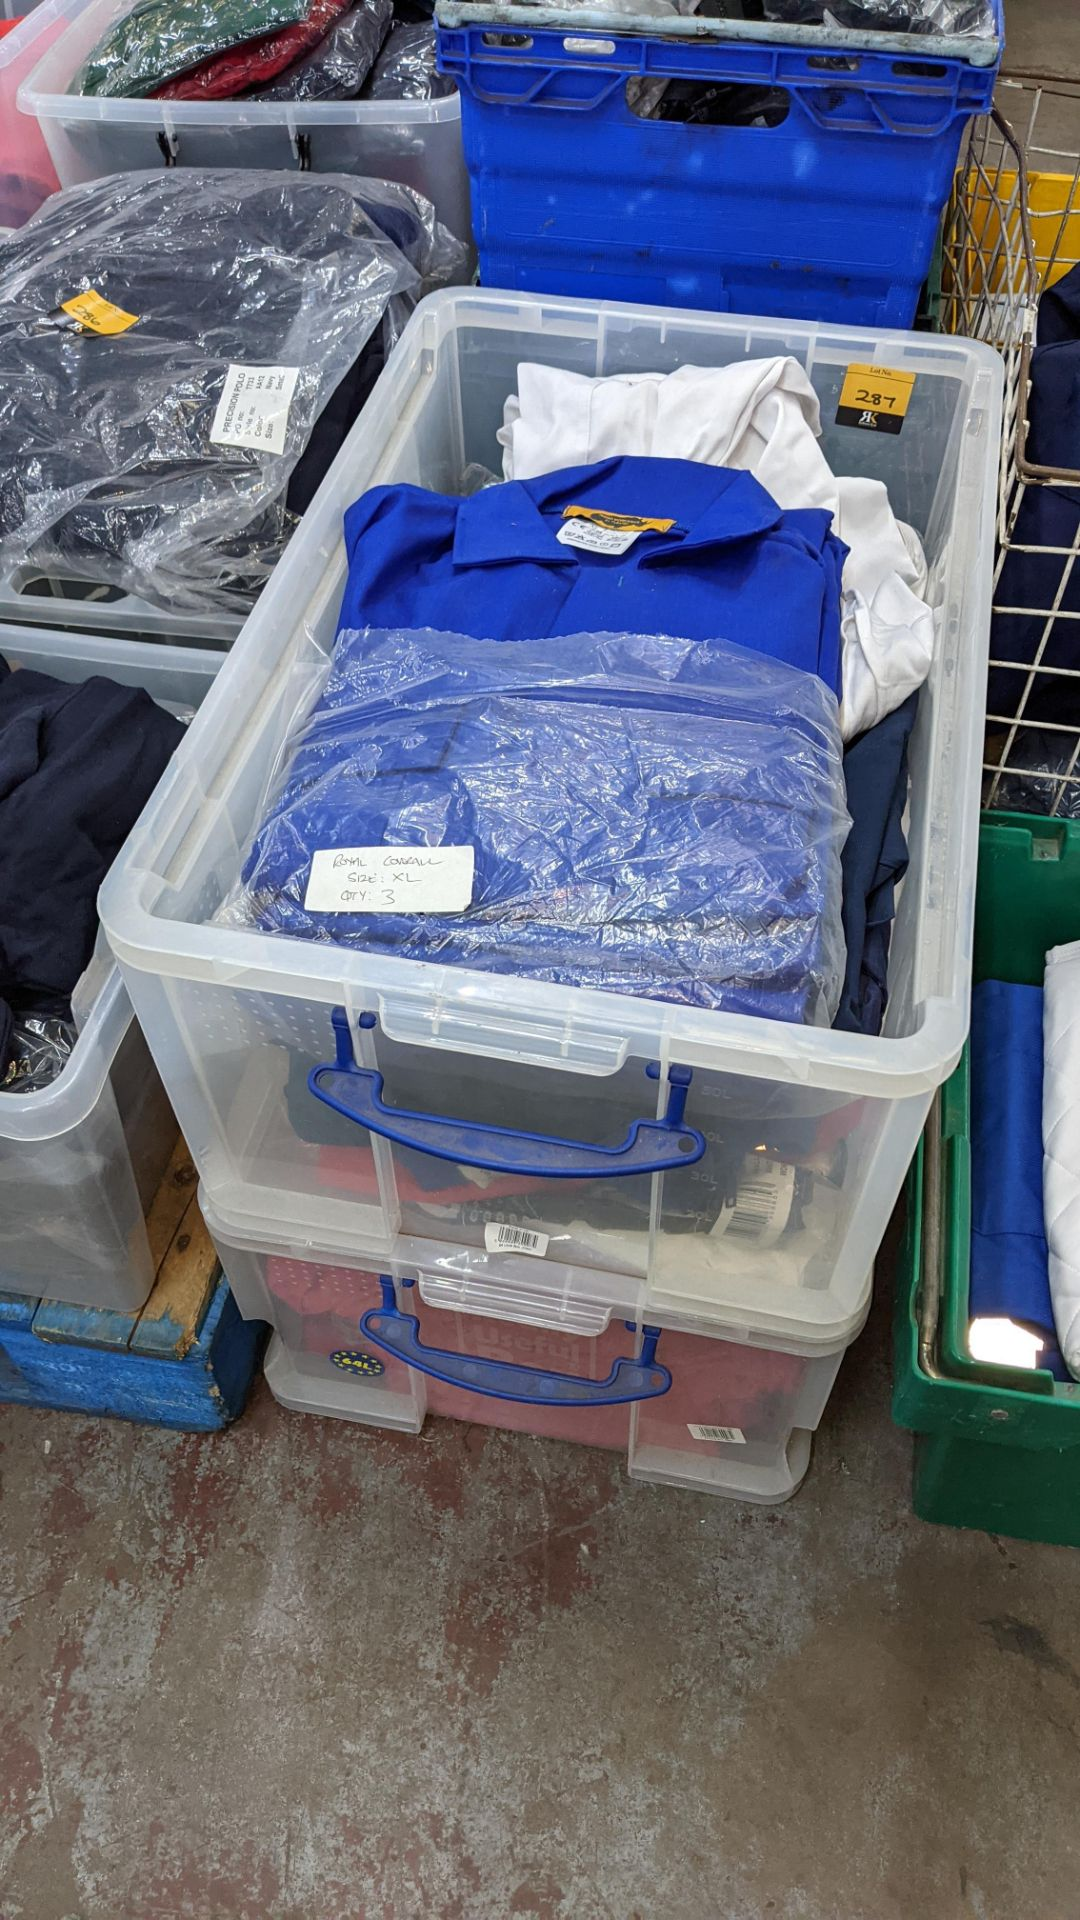 The contents of 2 crates of assorted boiler suits & similar. NB crates excluded